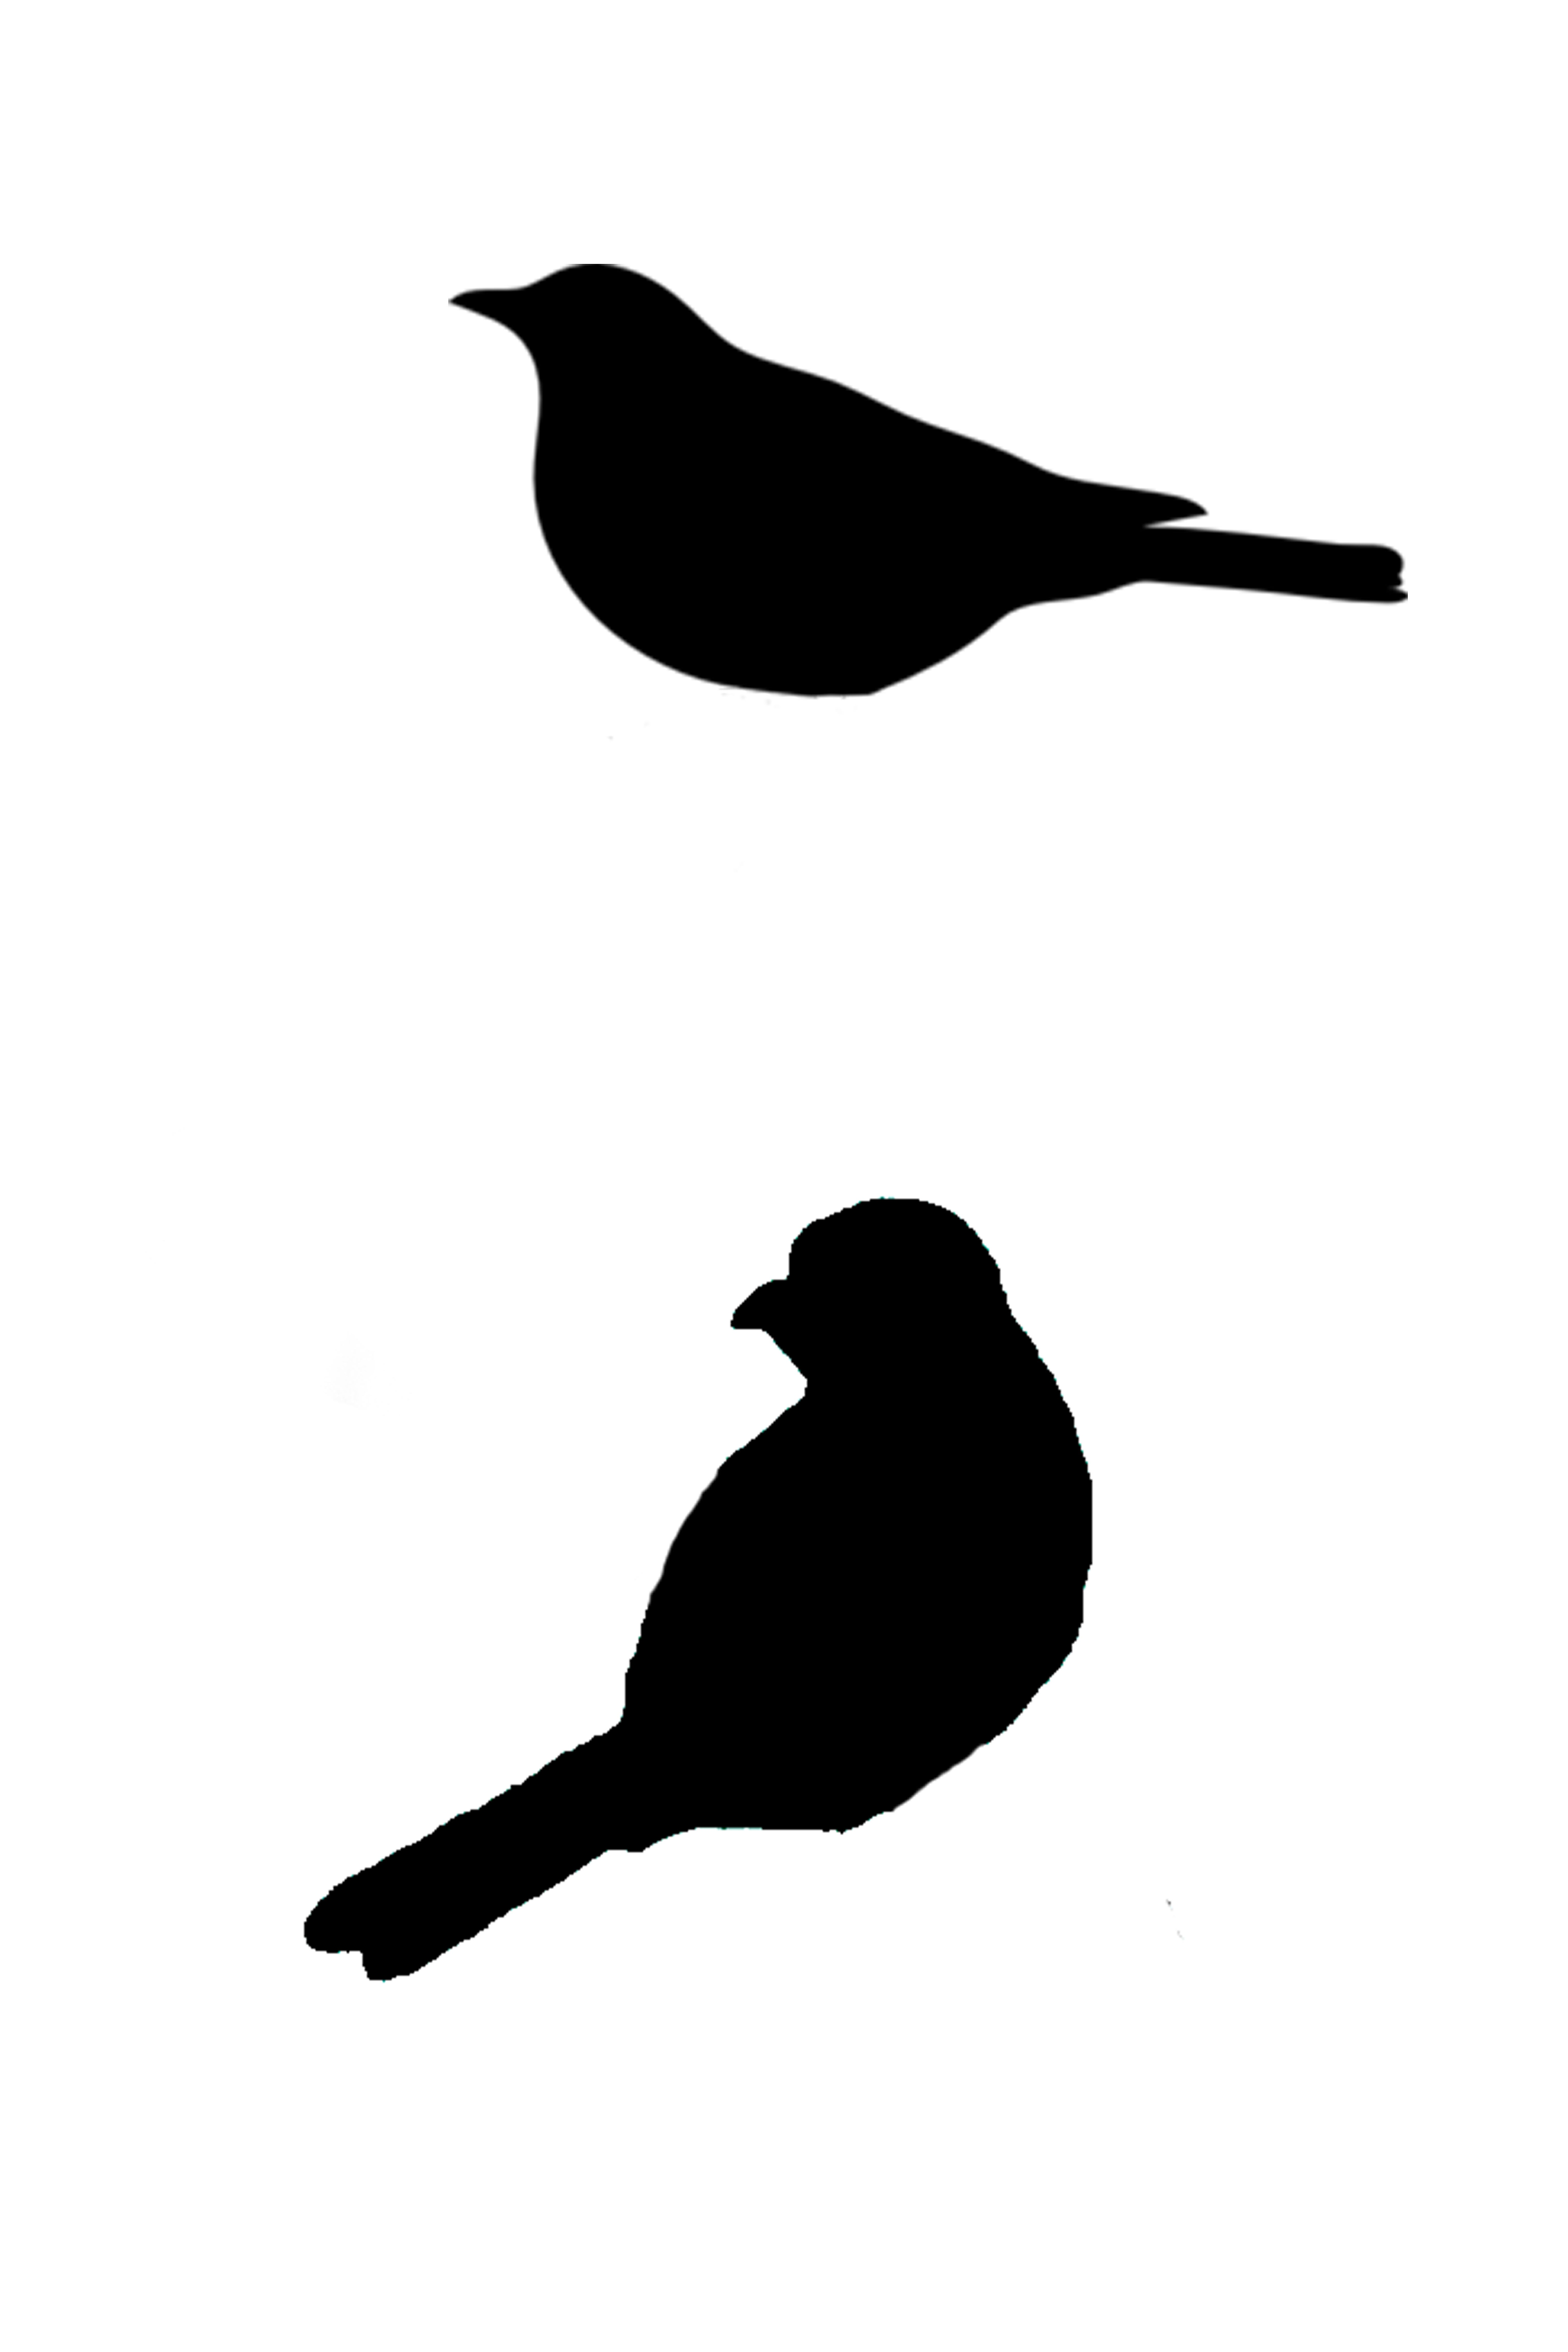 6096x9144 Sitting Bird Silhouette, Cut Out For Canvas Art ) Stencils